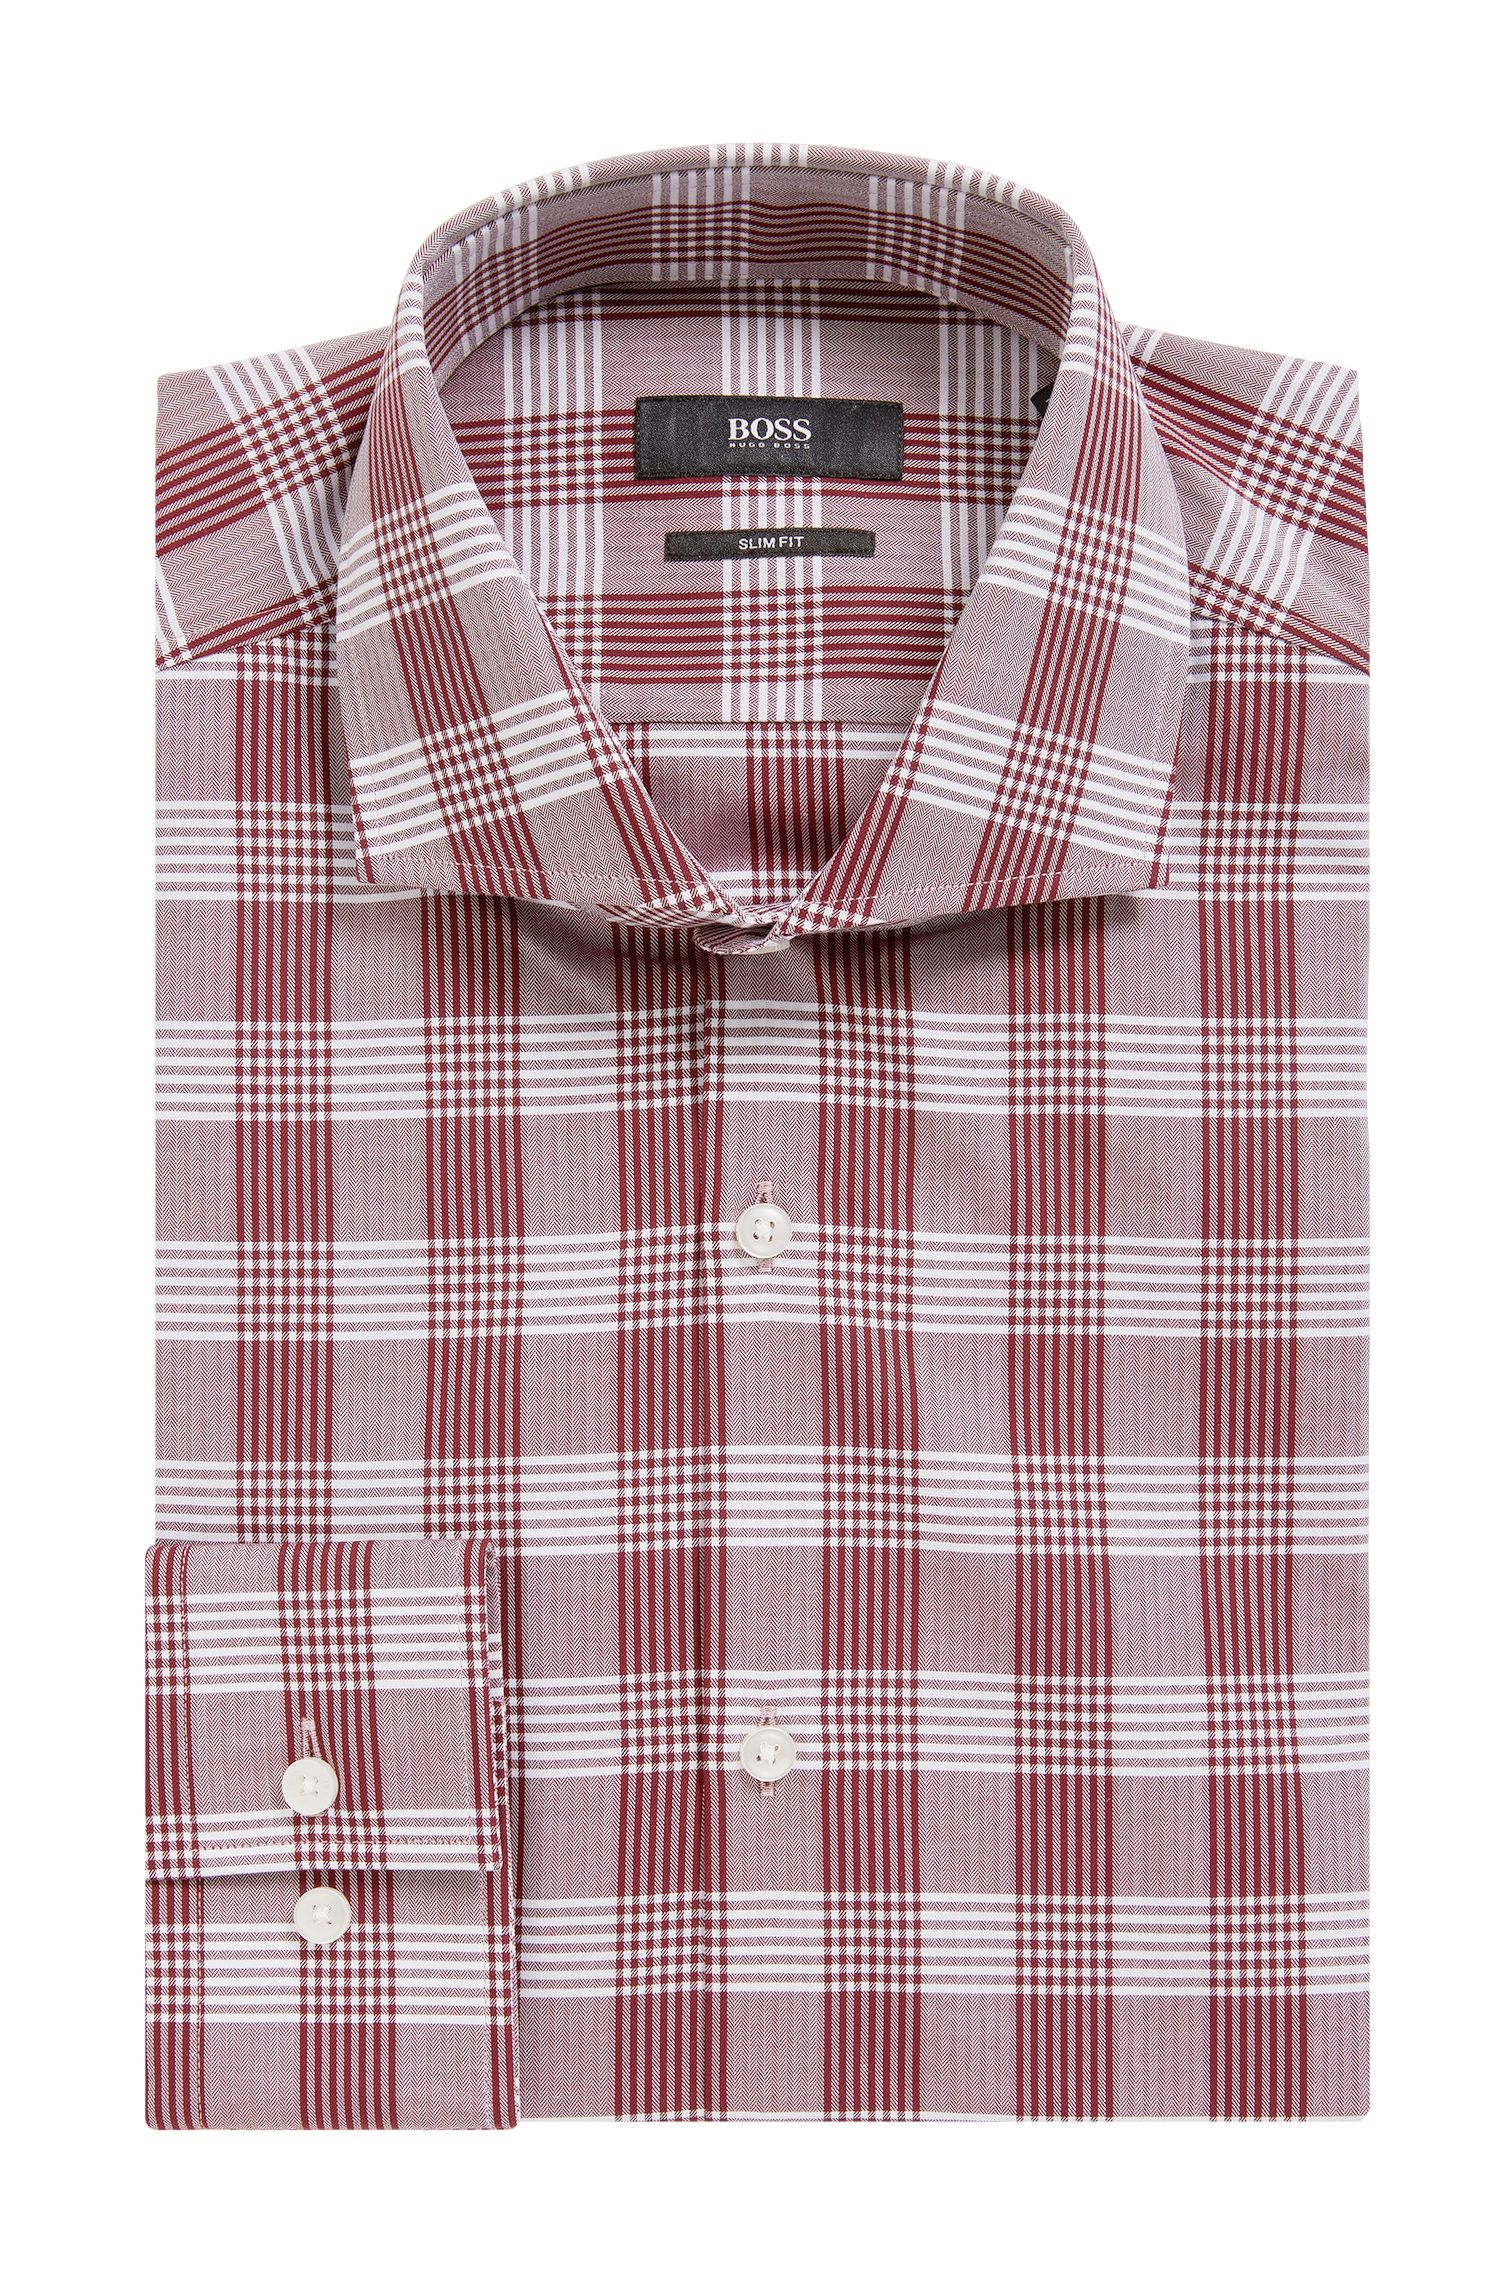 Herringbone Check Cotton Dress Shirt, Slim Fit | Jason